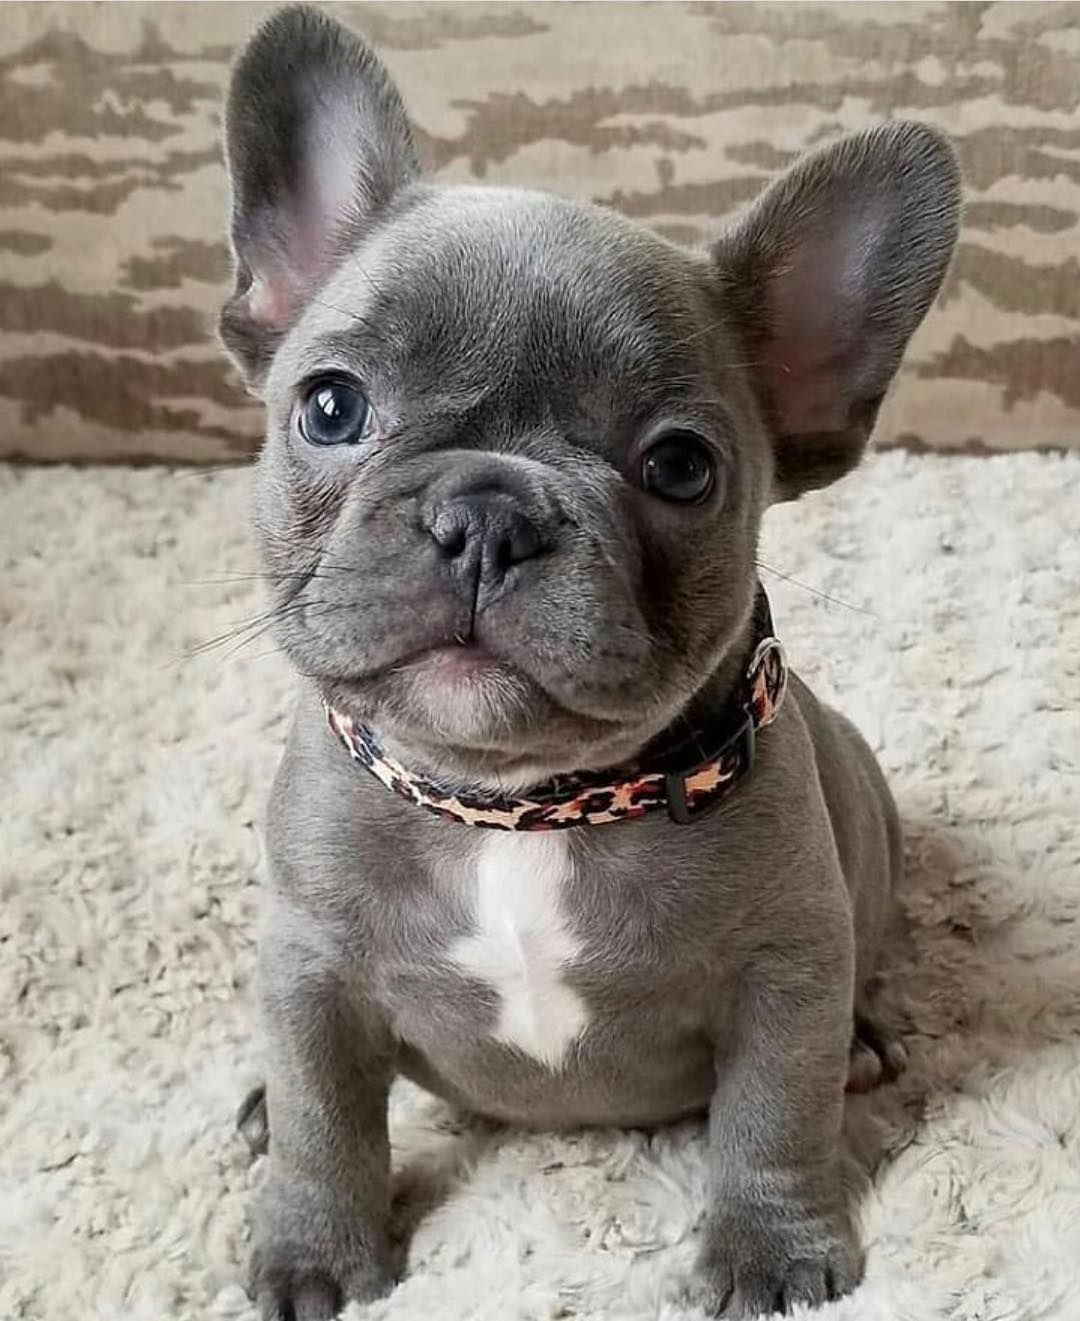 We Re Waiting For This Little Guy To Come Into Our Life One Day I Can T Take It He S Sooooo French Bulldog Puppies Cute Dogs Blue French Bulldog Puppies